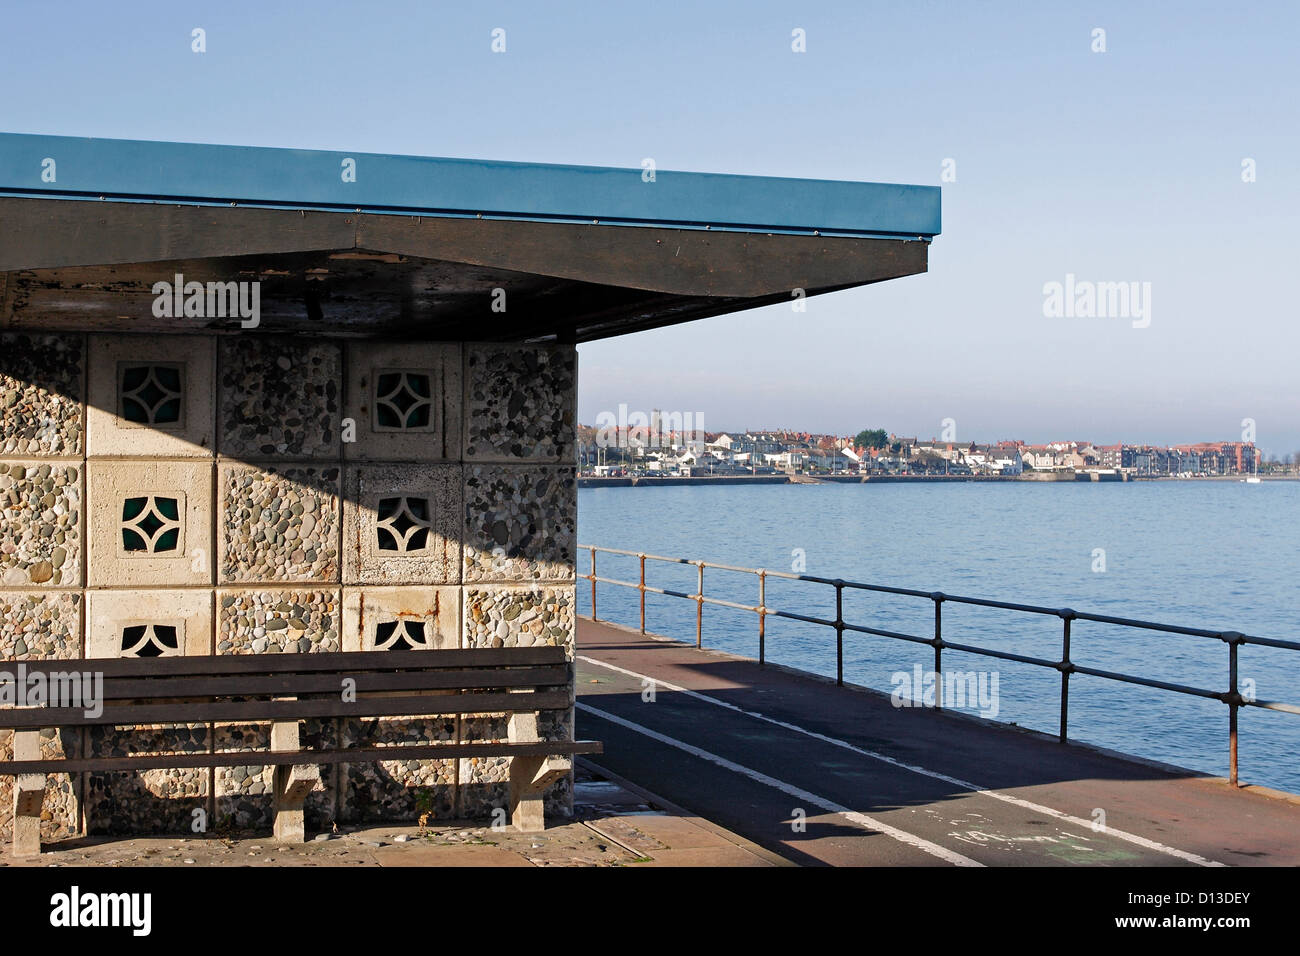 A seaside seating shelter on the promenade in Colwyn Bay, North Wales with Rhos on Sea visible in the distance. - Stock Image